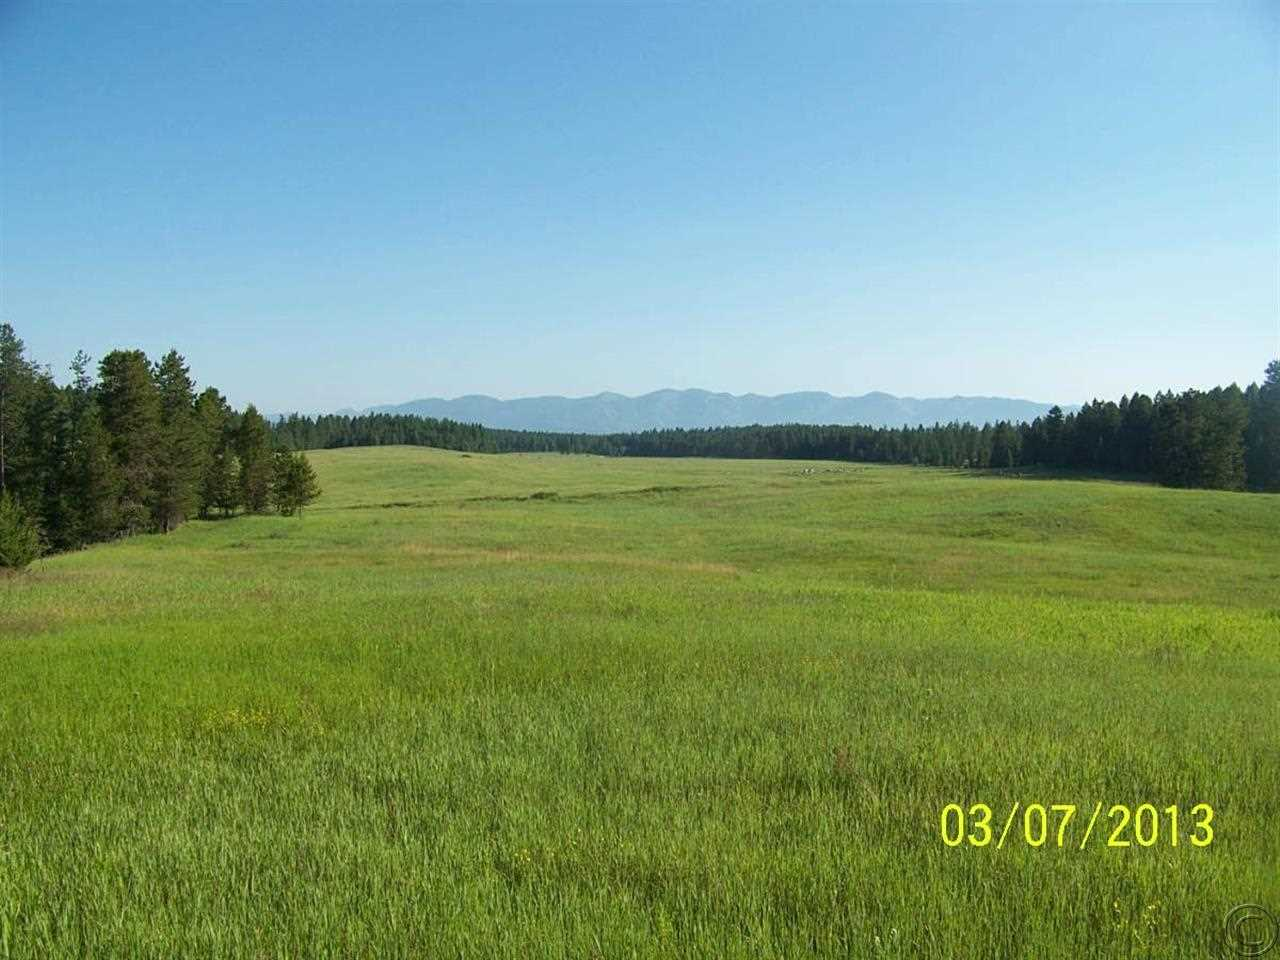 156 acres in Whitefish, Montana